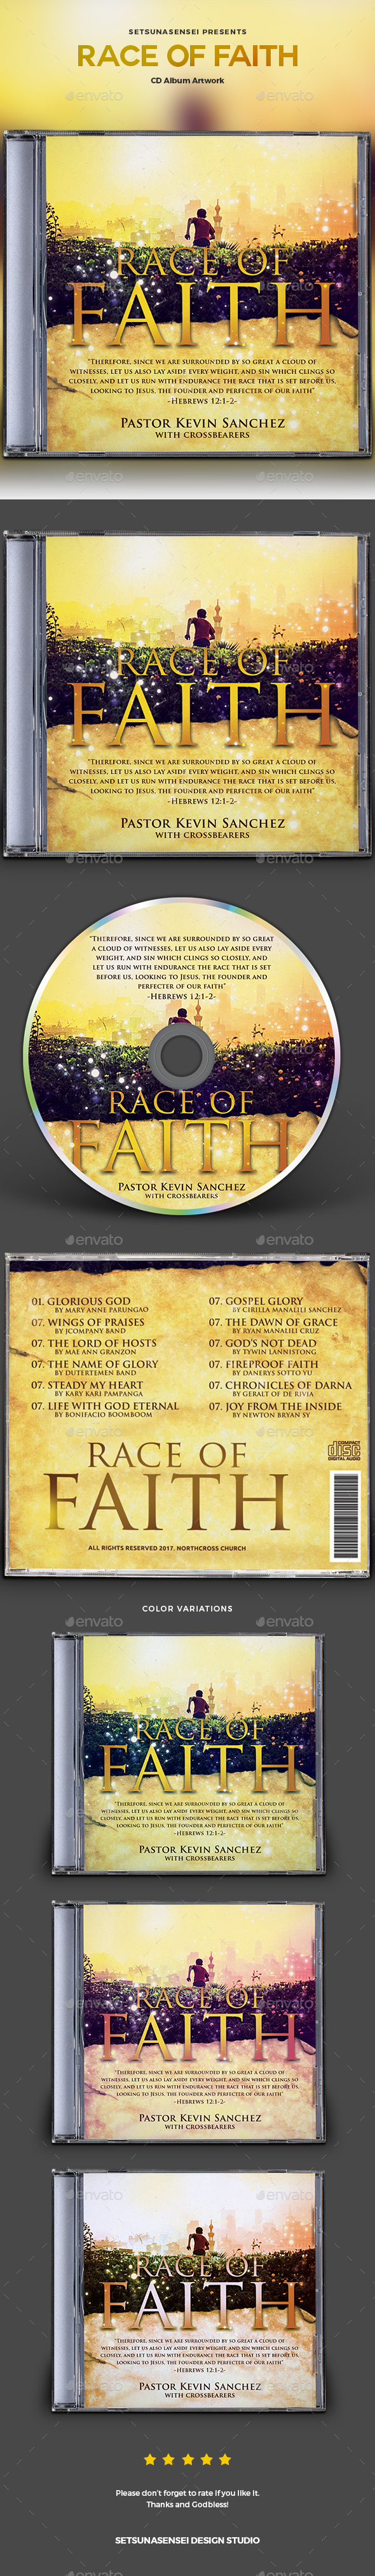 GraphicRiver Race of Faith CD Album Artwork 20939828